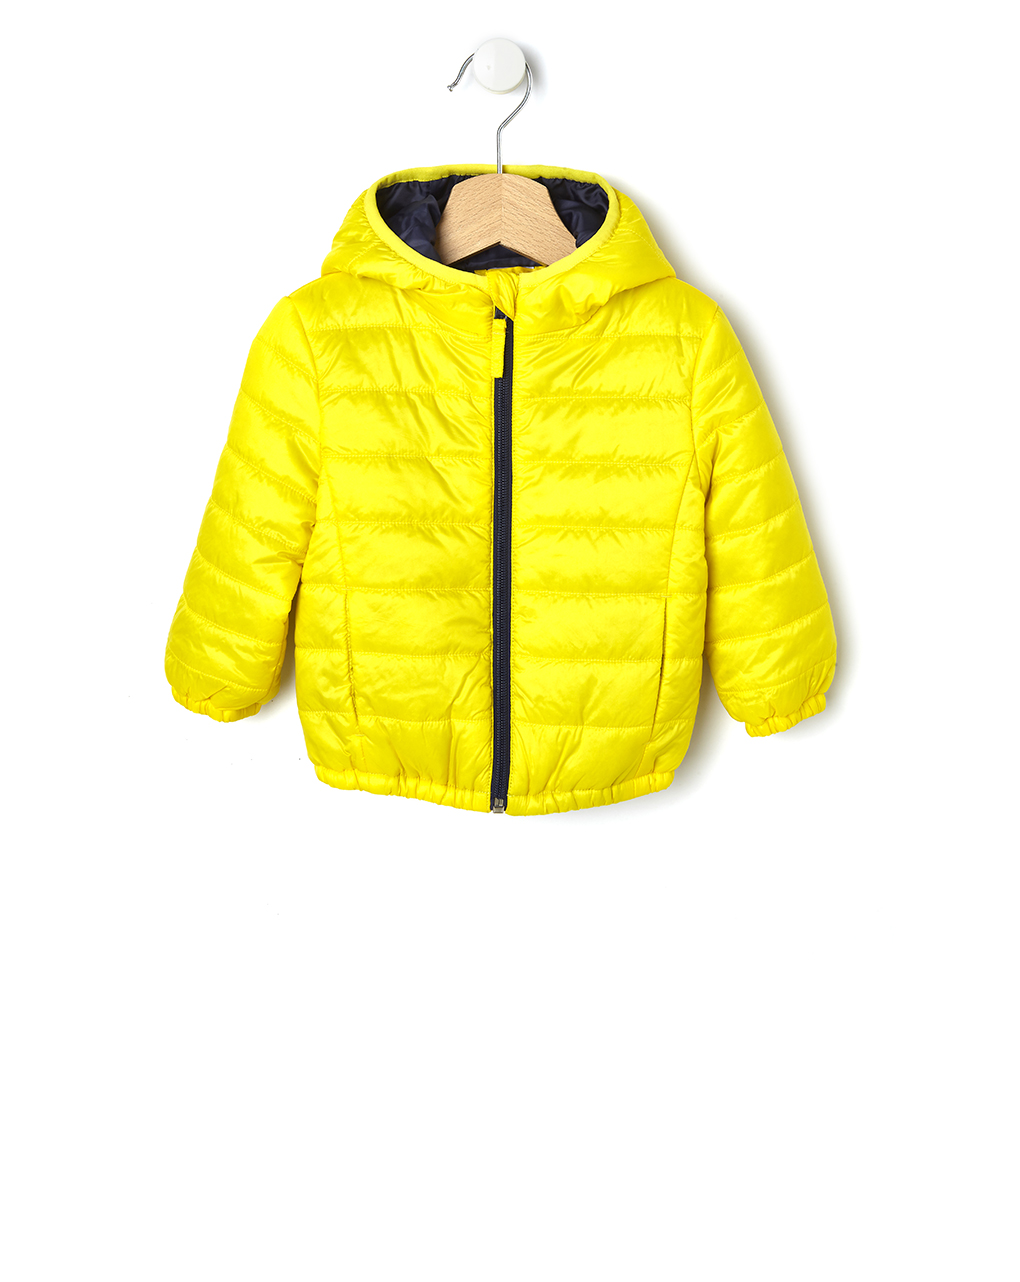 cheap for discount d0fbb c5eef Piumino leggero giallo